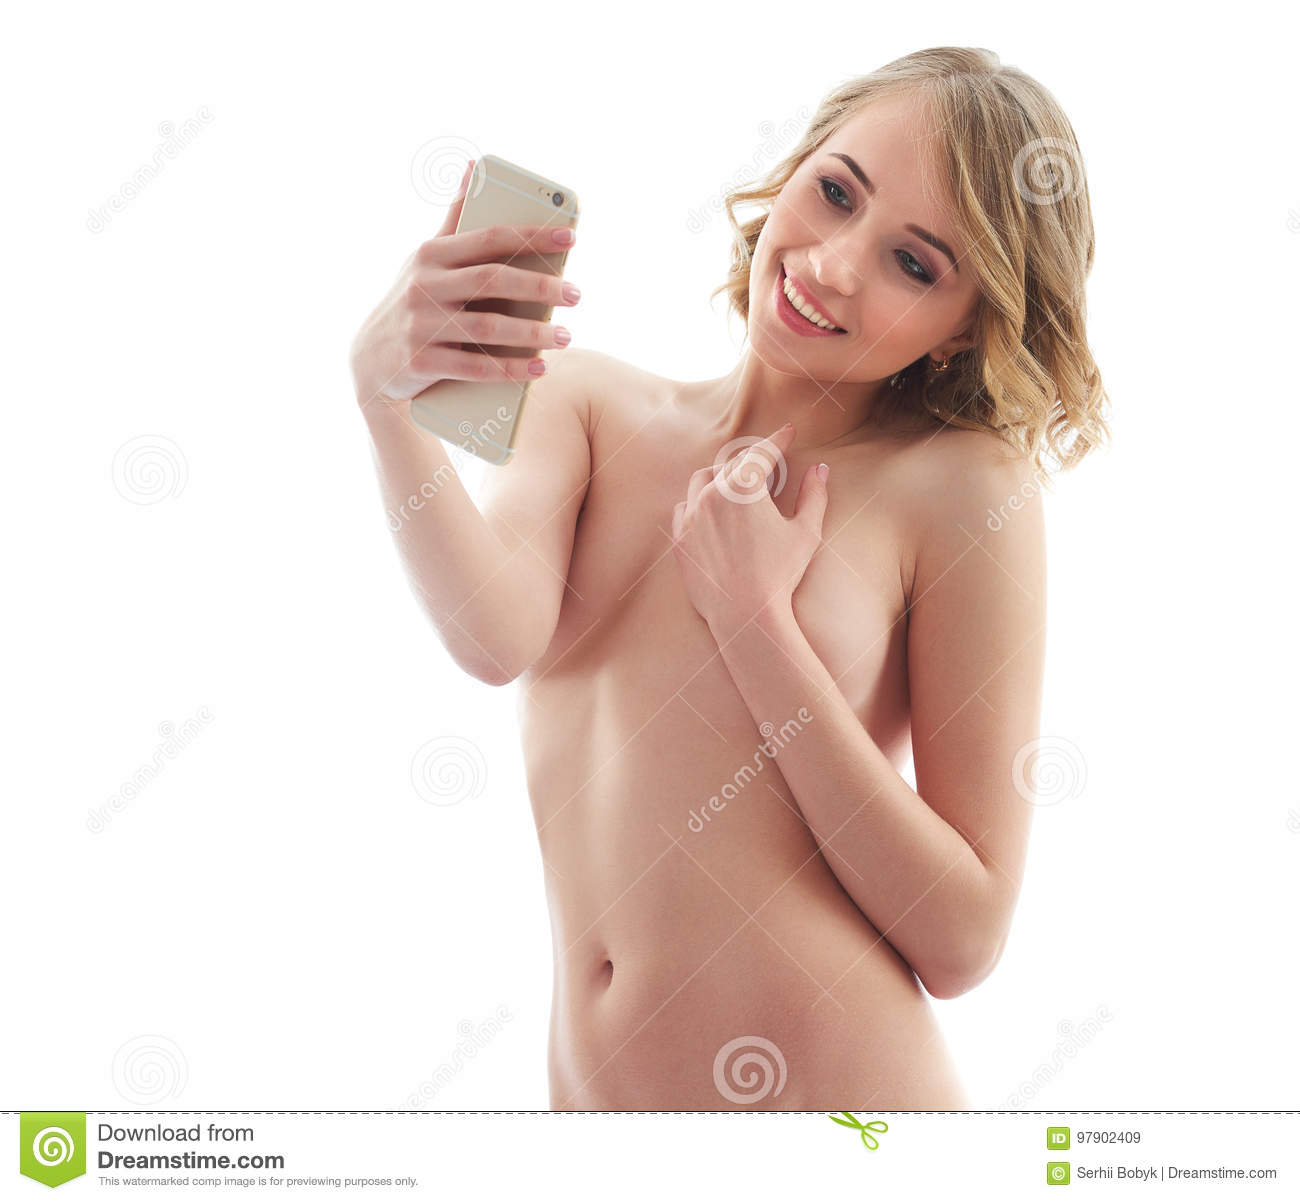 Young women naked selfies